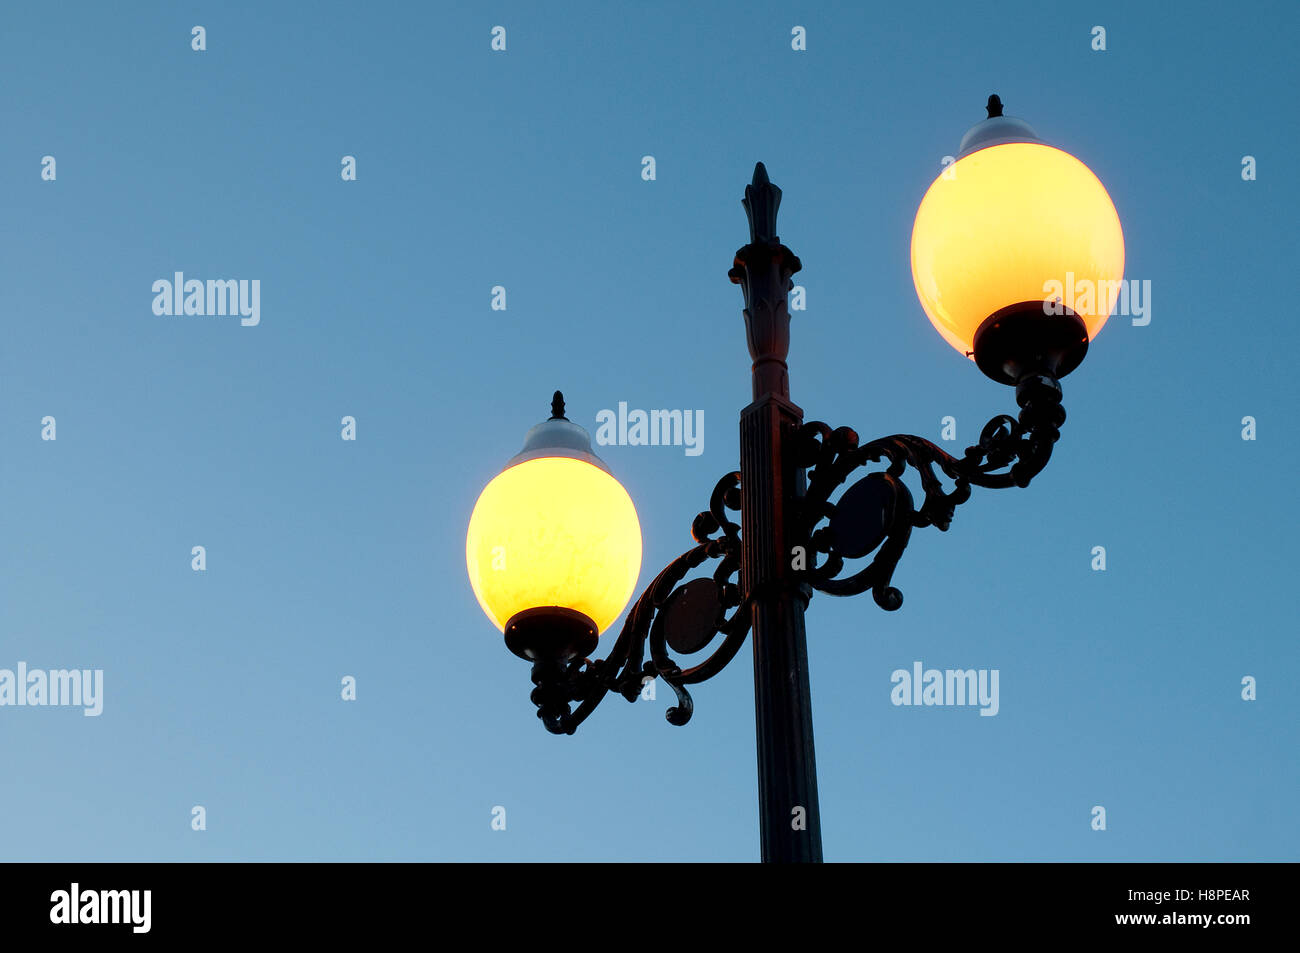 Detail of streetlight at evening. - Stock Image